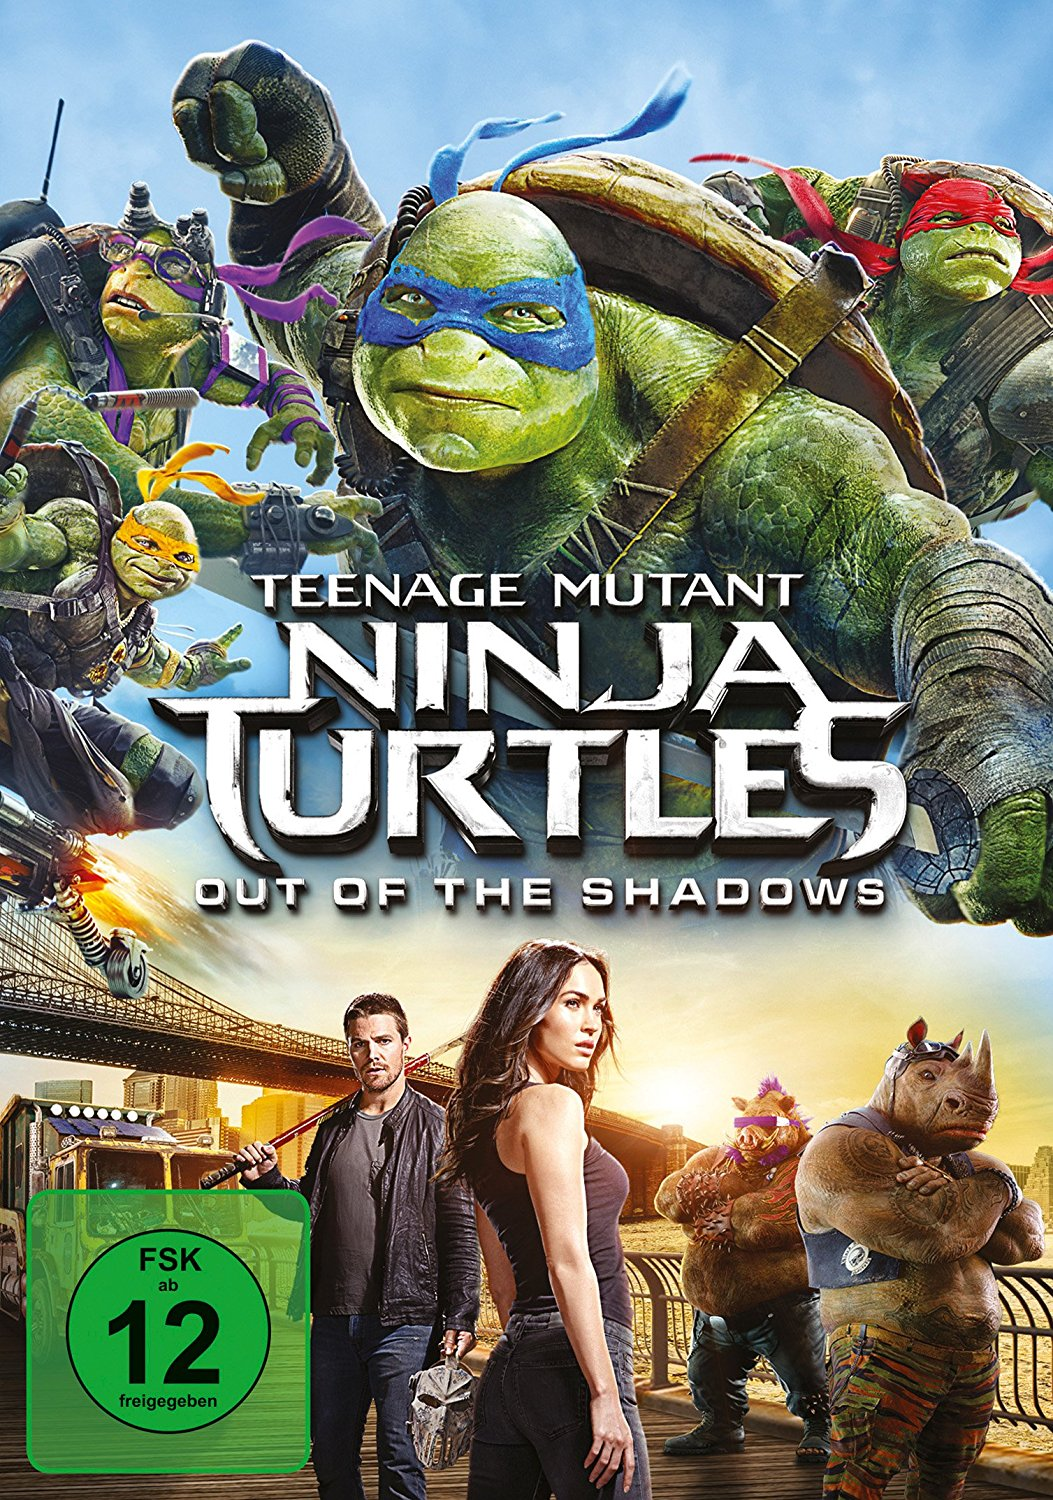 DVD-Cover von Teenage Mutant Ninja Turtles: Out of the Shadows